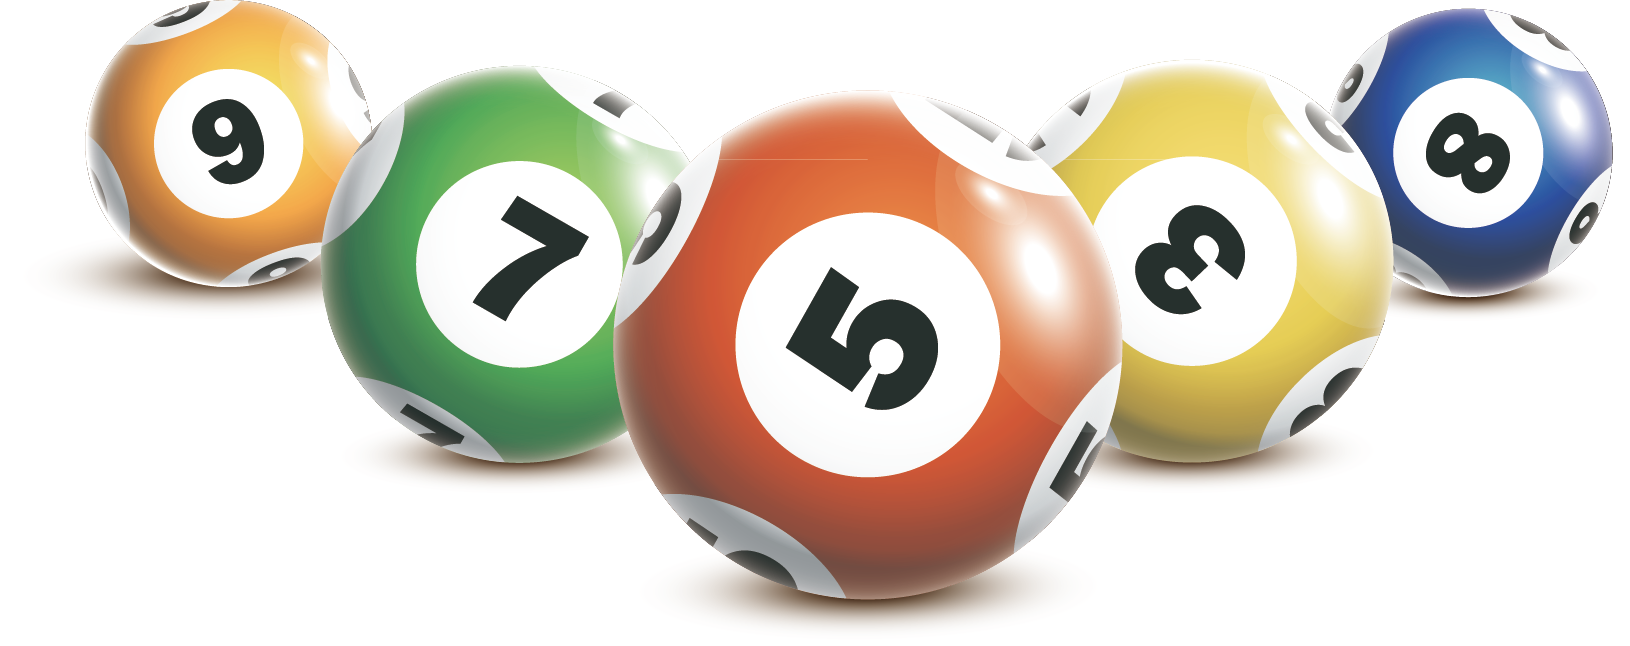 Keno rules: learn how to win online in this casino game